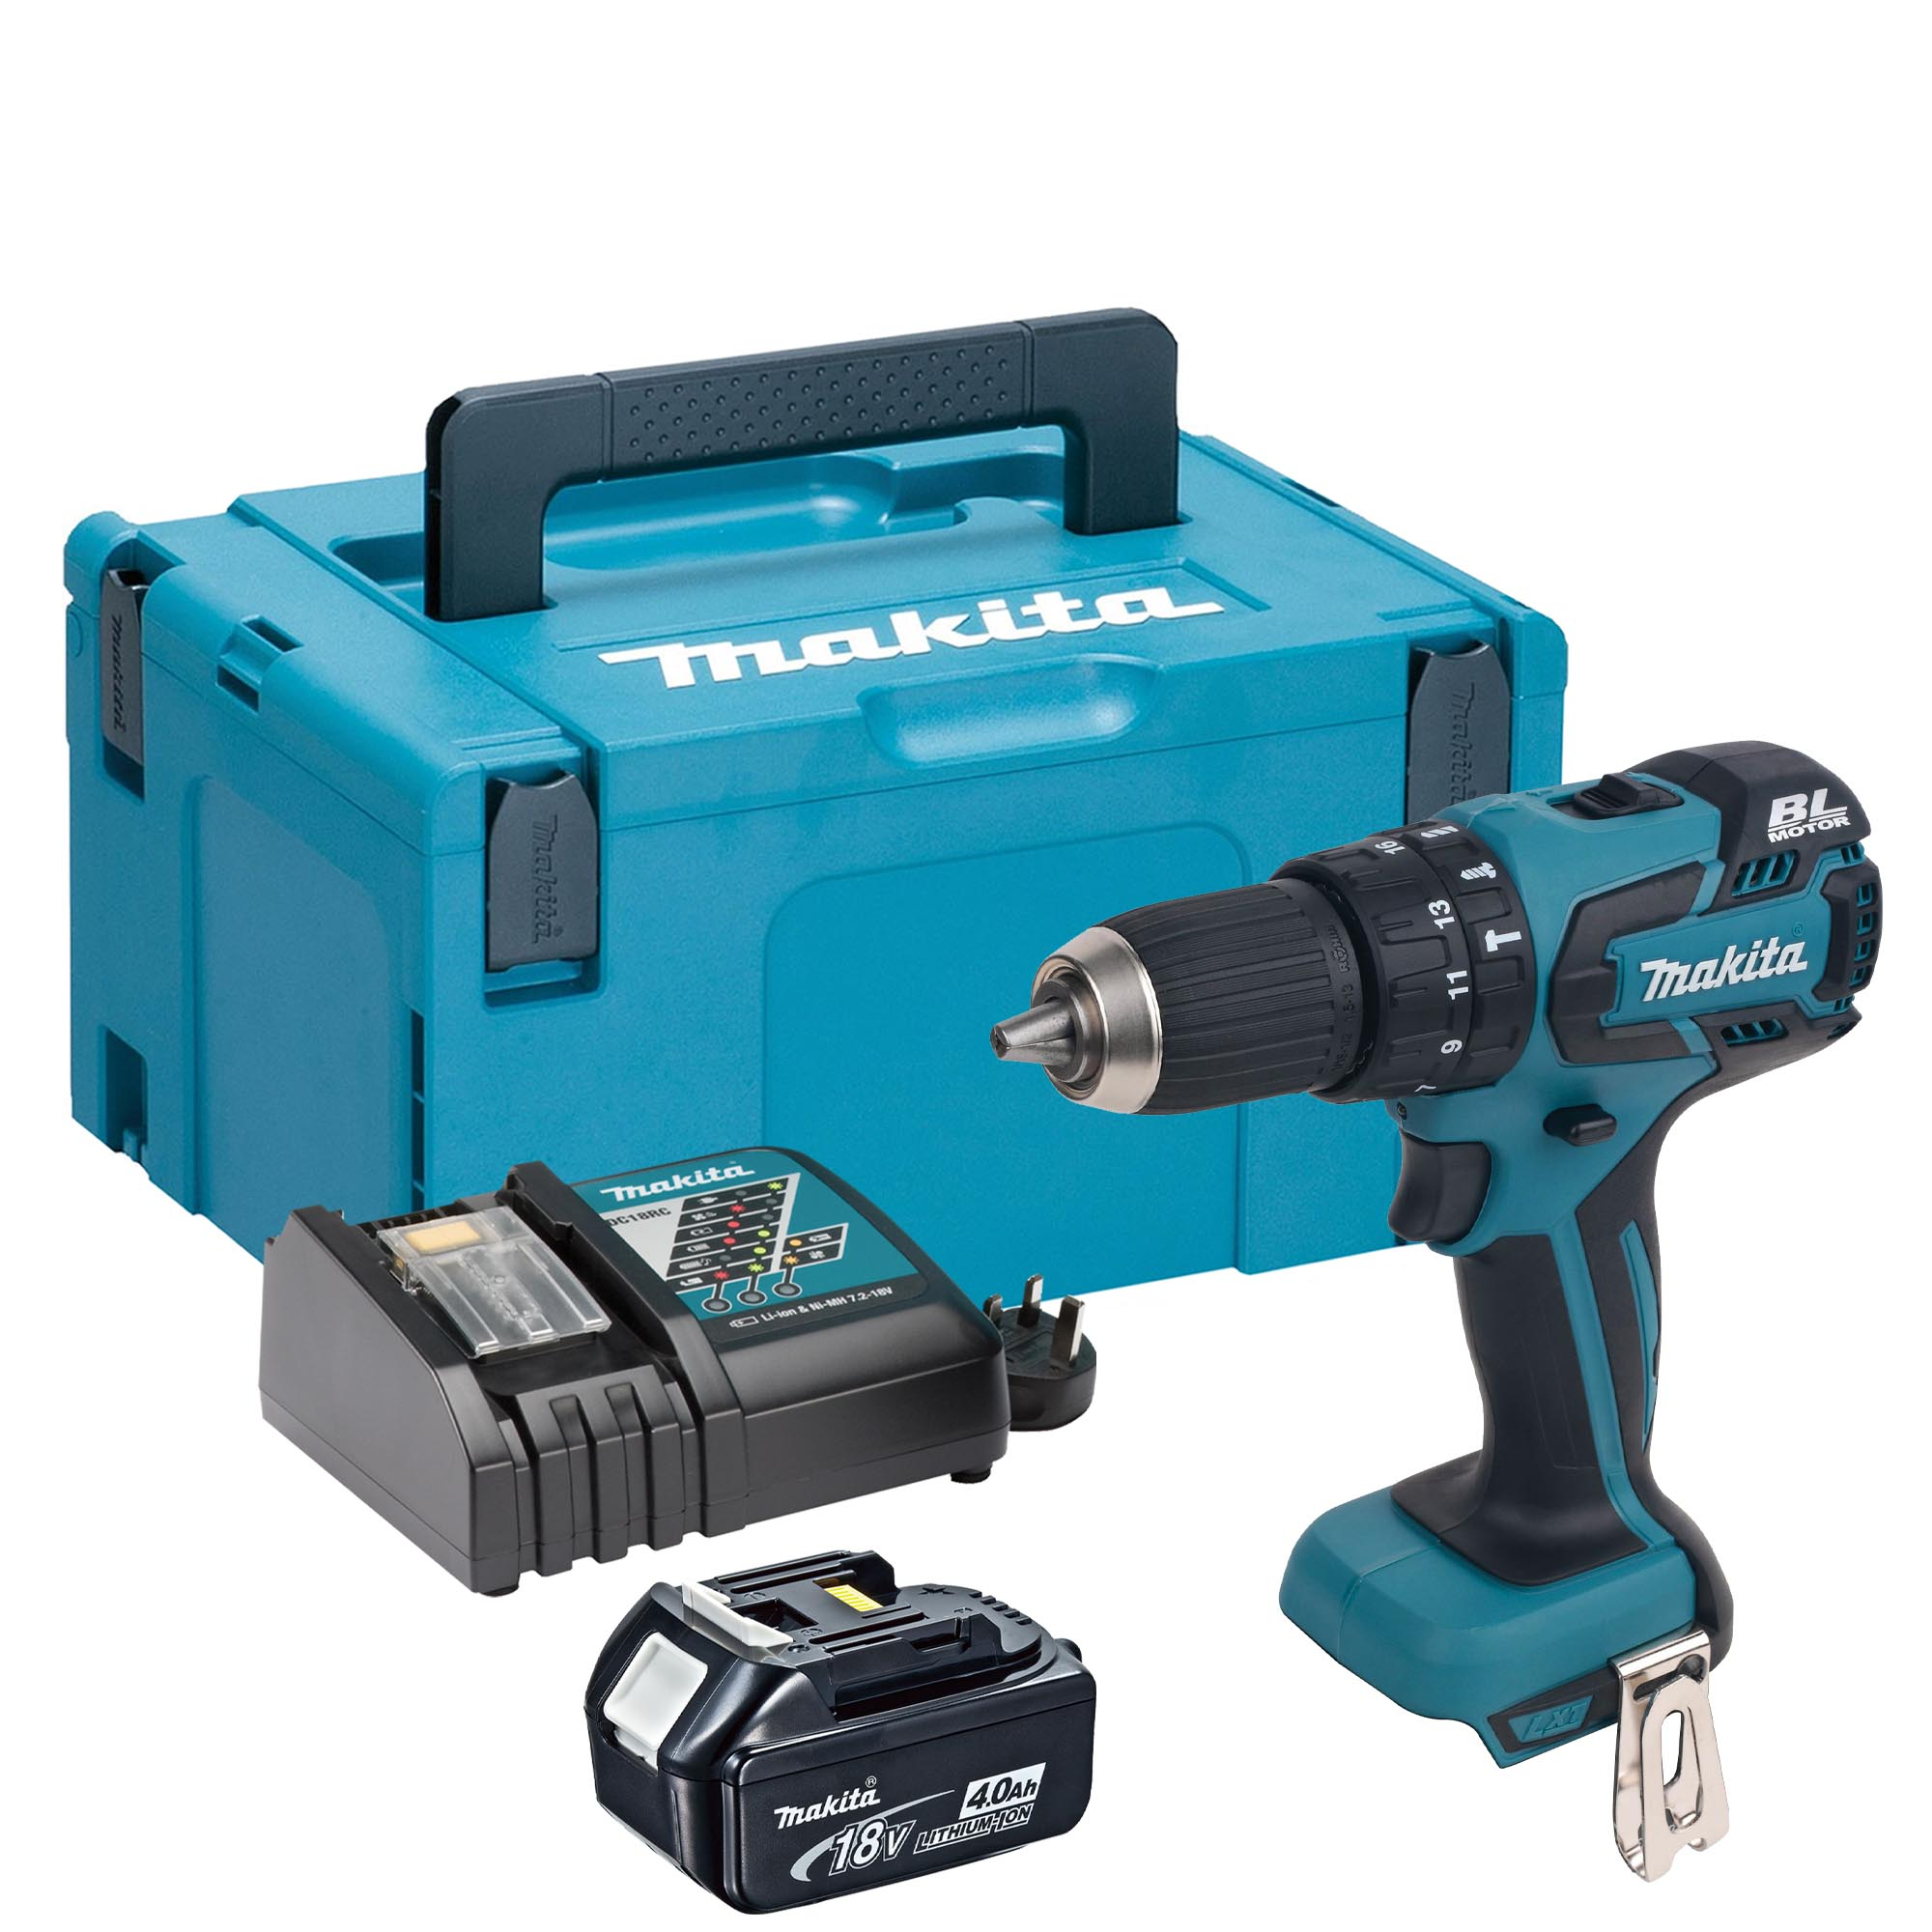 makita dhp459rmjx makita 18v brushless hammer drill driver. Black Bedroom Furniture Sets. Home Design Ideas